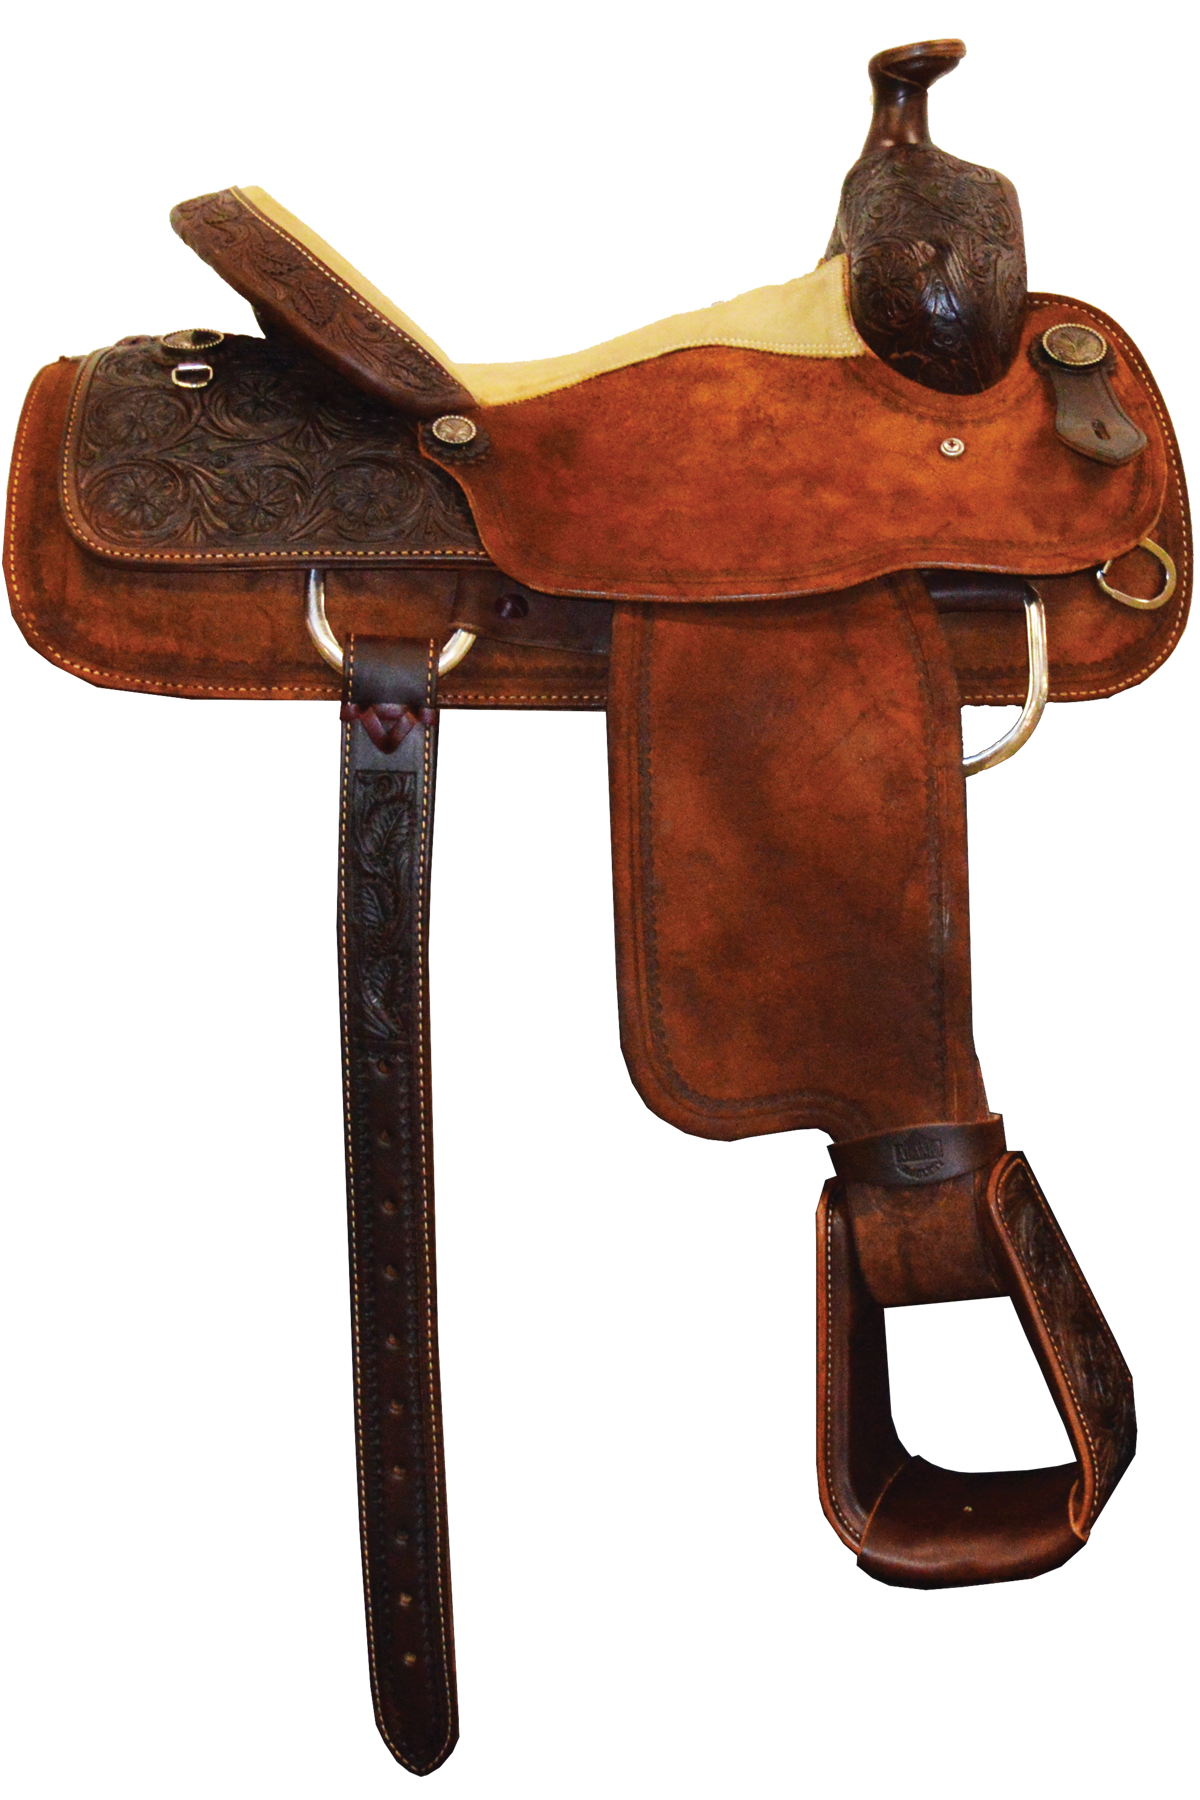 SD-15 Roper Saddle, Toast & Roughout leather with border and floral tooling